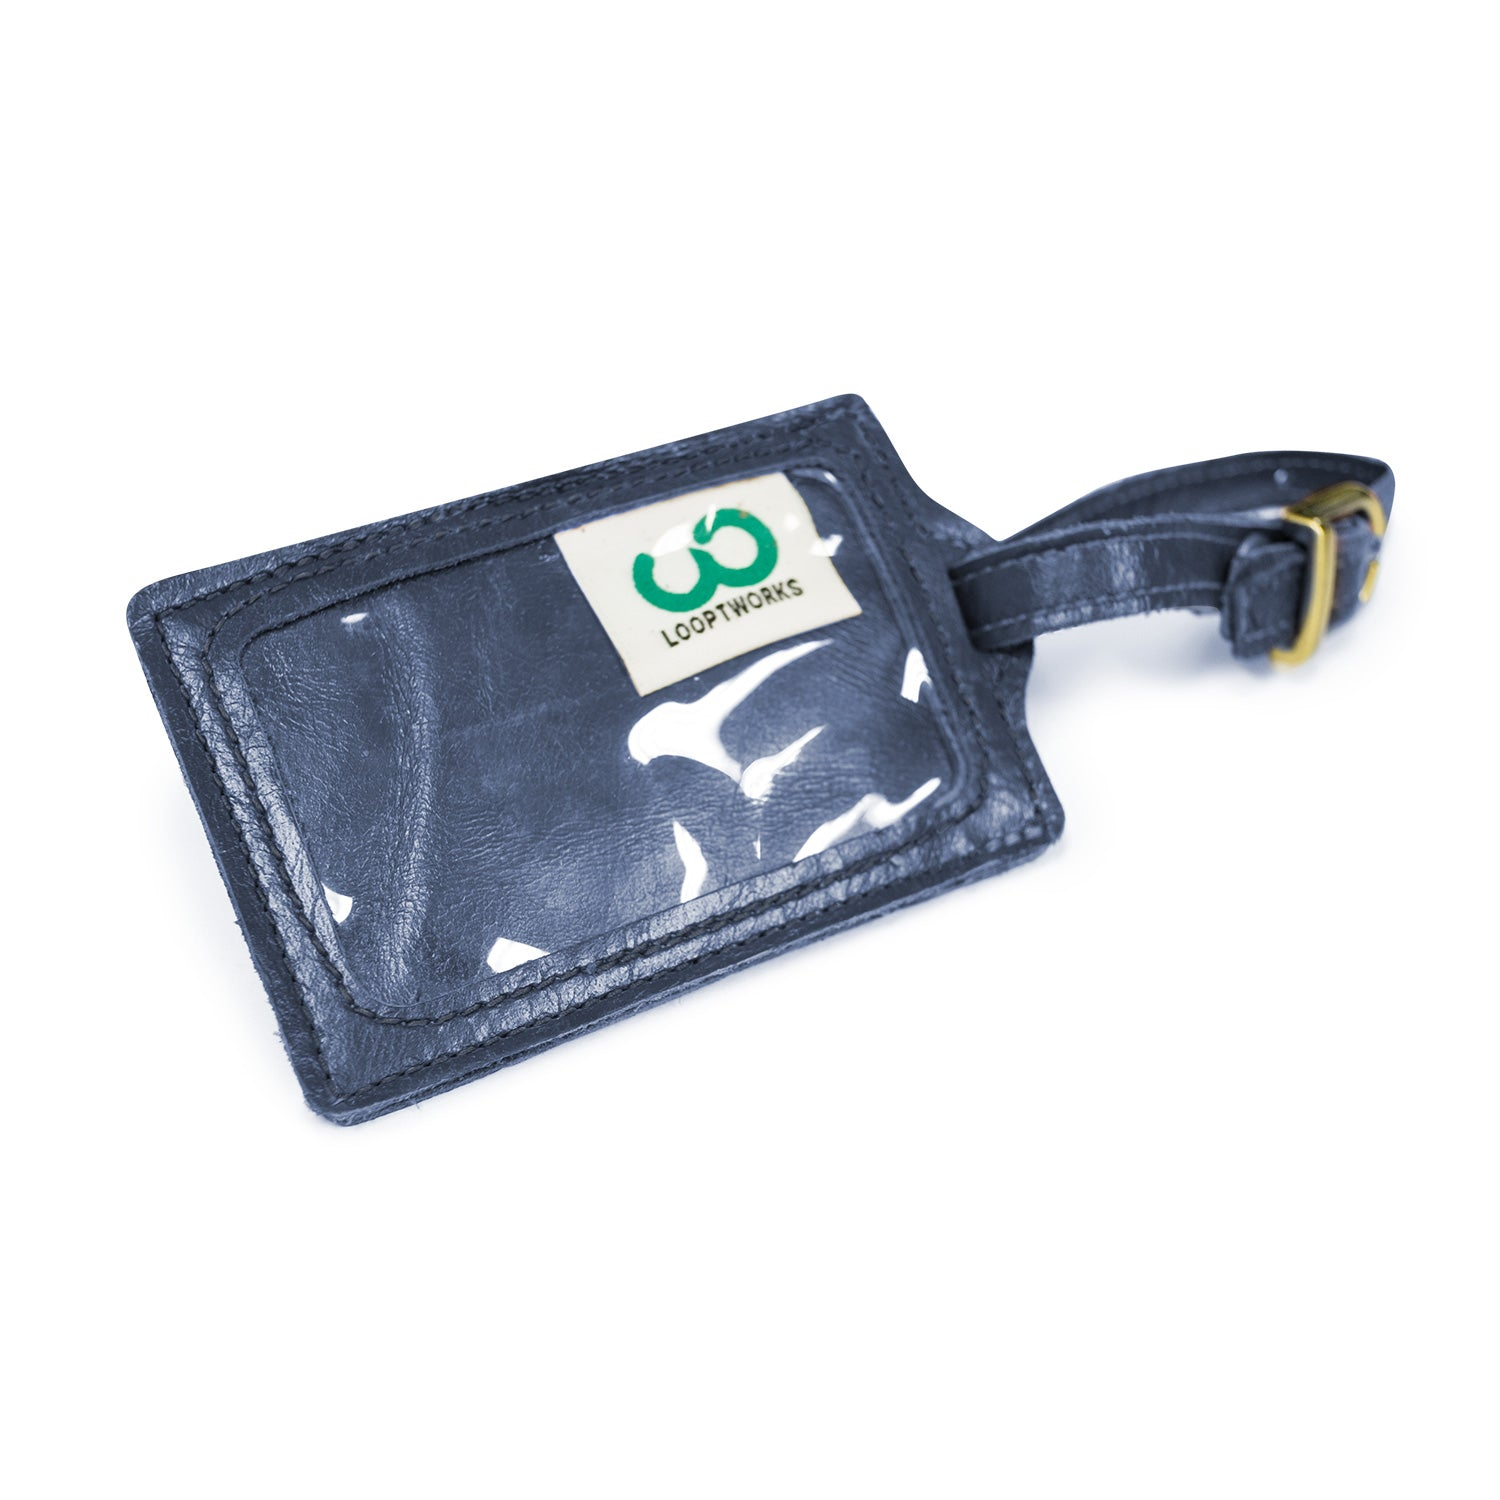 In Flight Luggage Tag Accessories - Looptworks